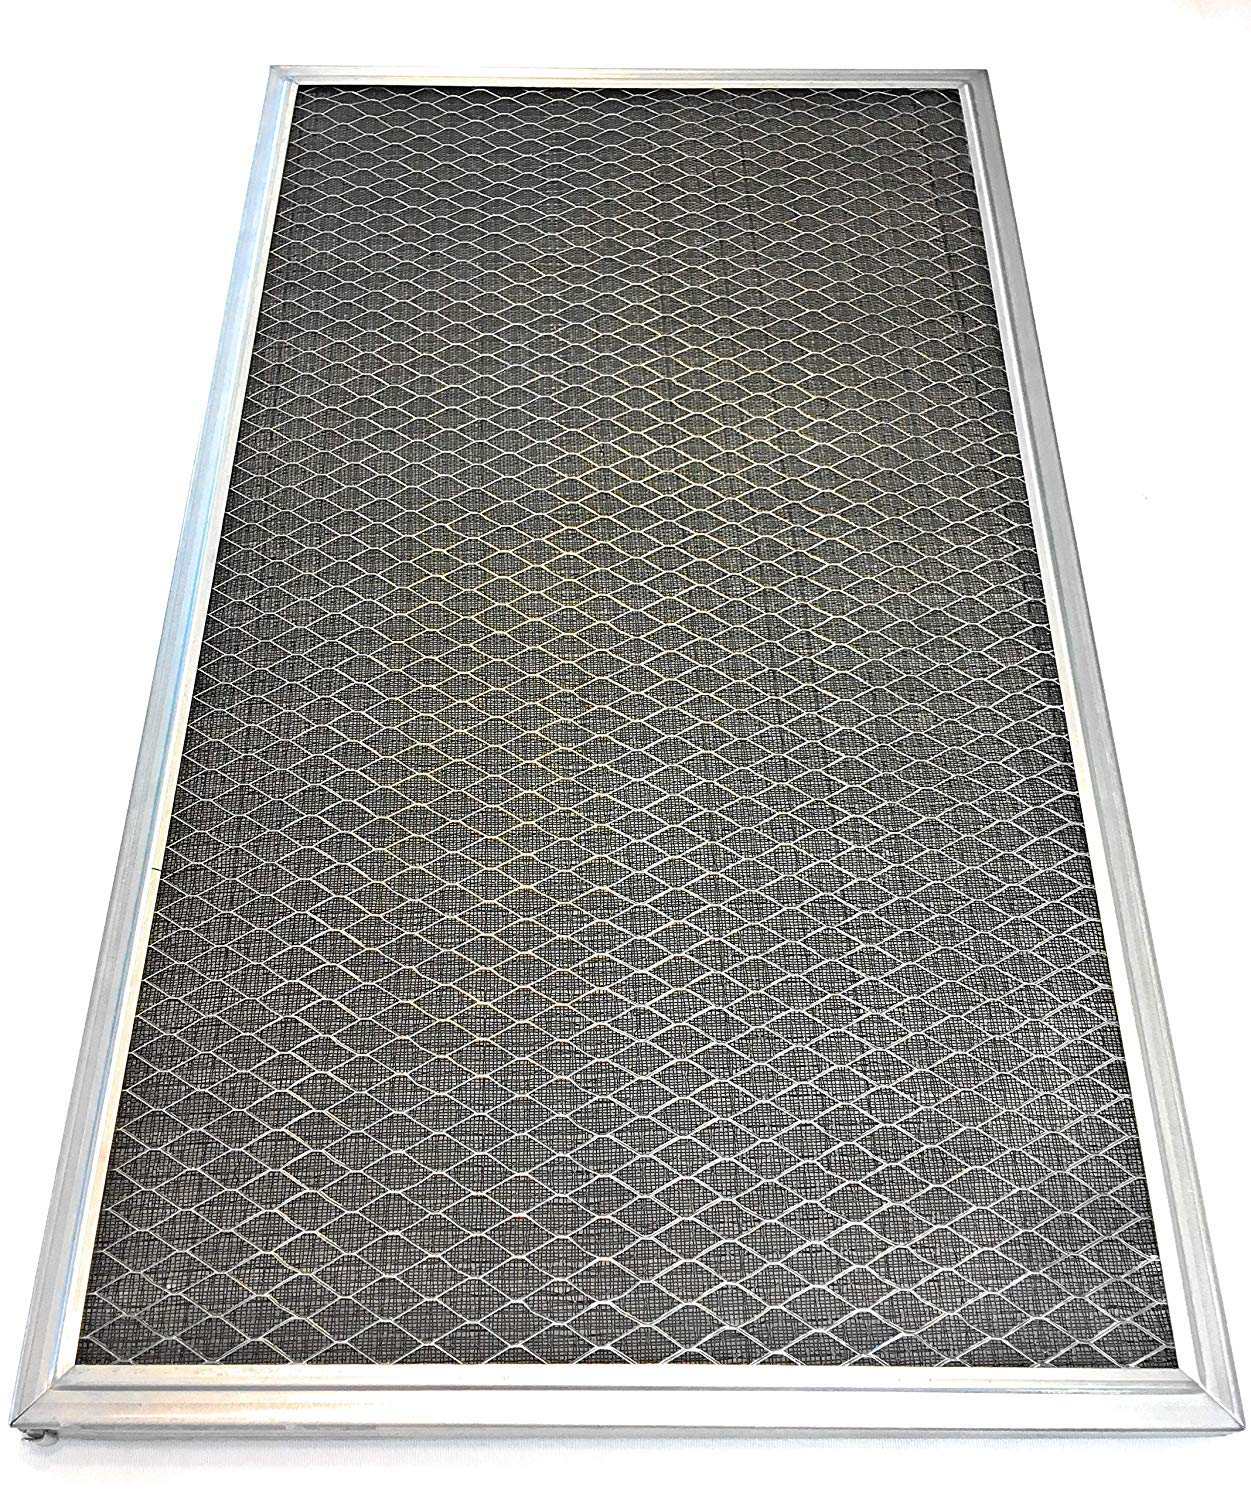 Electrostatic Air Filter (14x20x1) by Venti Tech – Permanent Washable HVAC System Filter – Captures Allergens for Healthier Home Environment – Increases Airflow, Reduces HVAC Stress